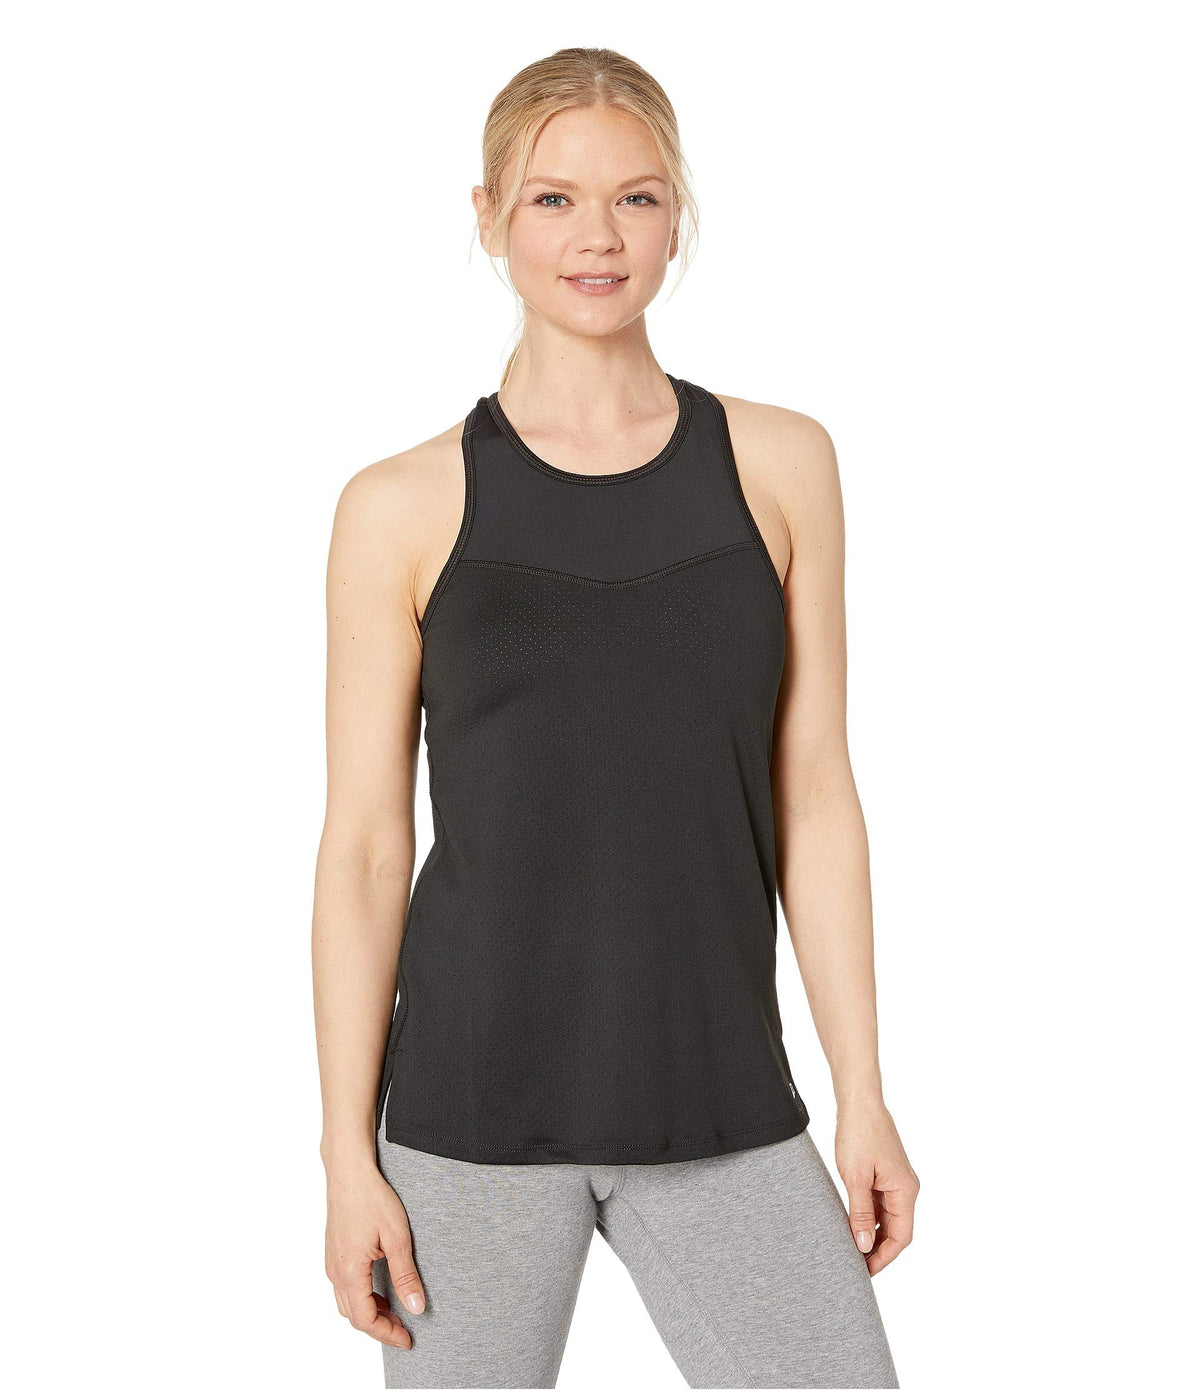 Racecation Tank Top